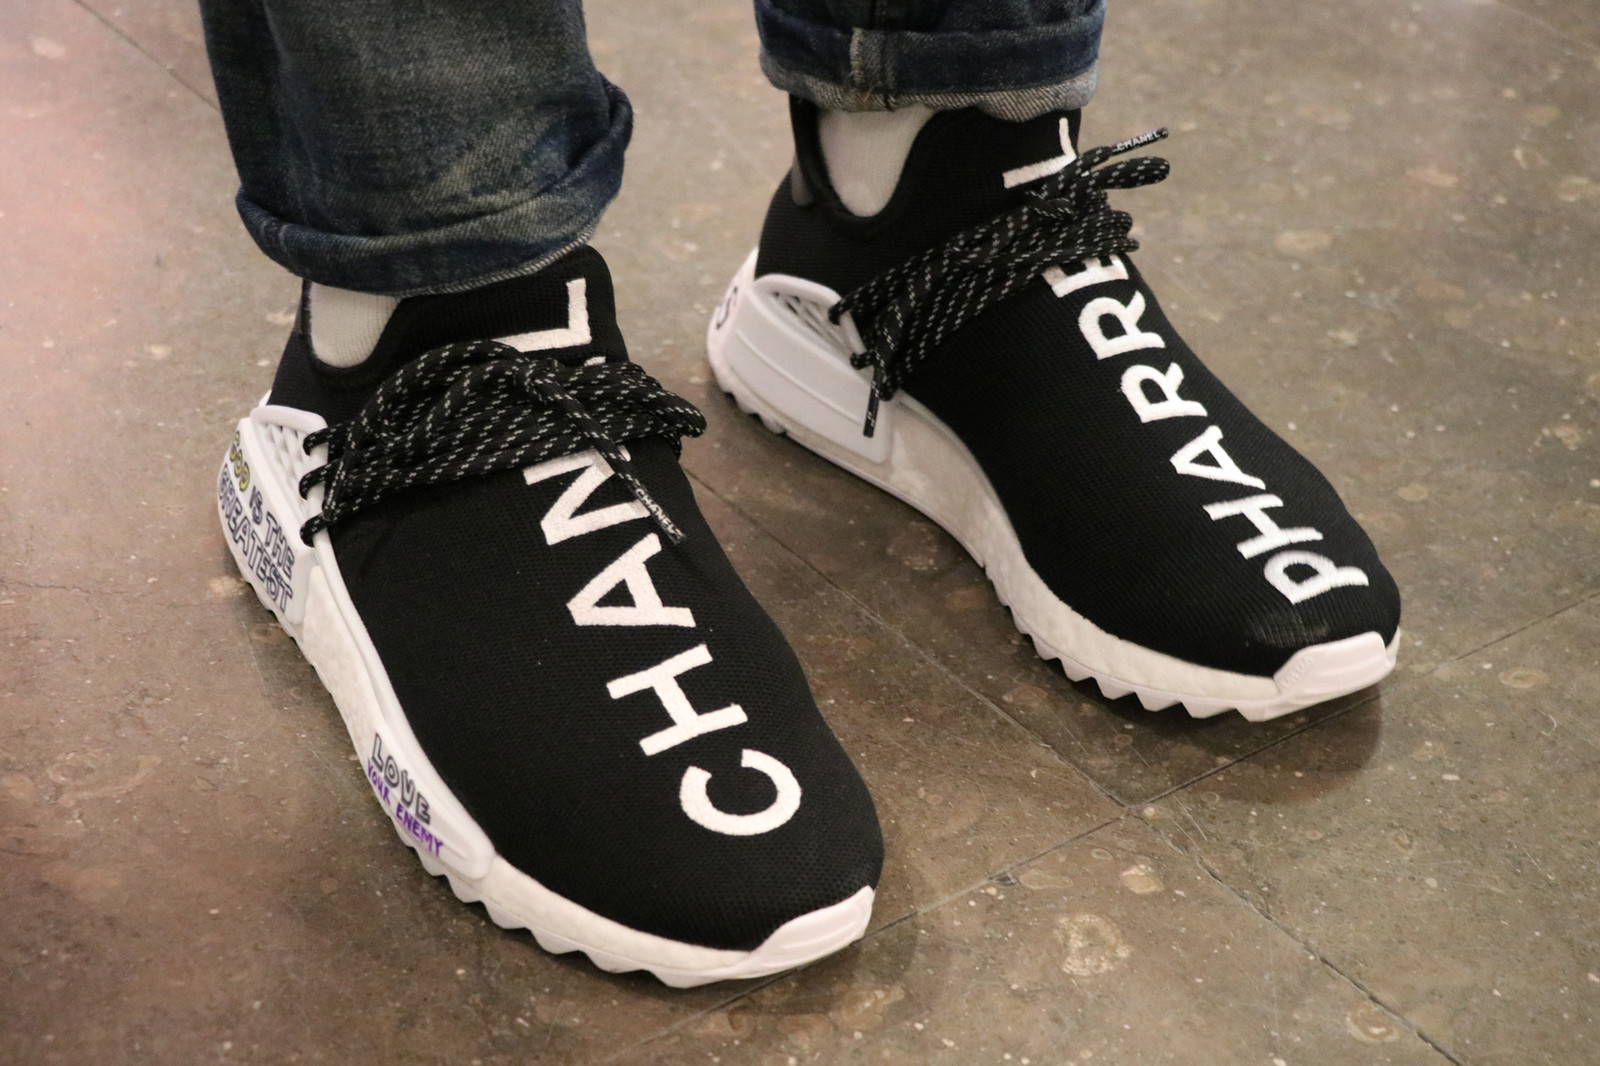 Chanel x adidas Originals Hu NMD On-Feet Look | HYPEBEAST